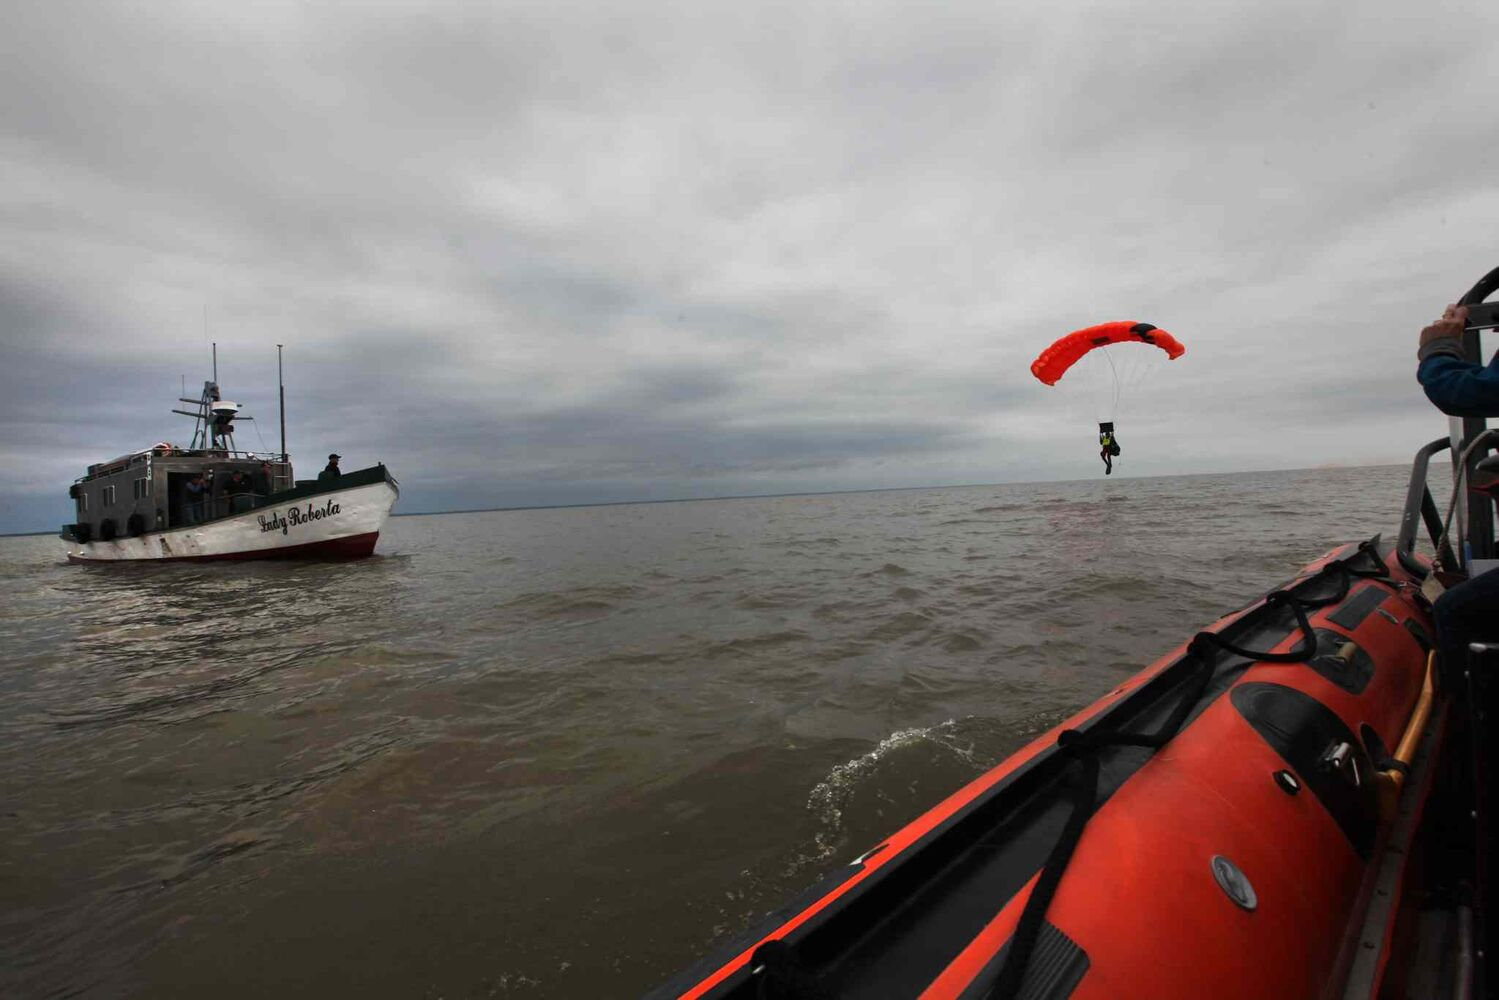 A SAR tech prepares to land in the water near the Lady Roberta.